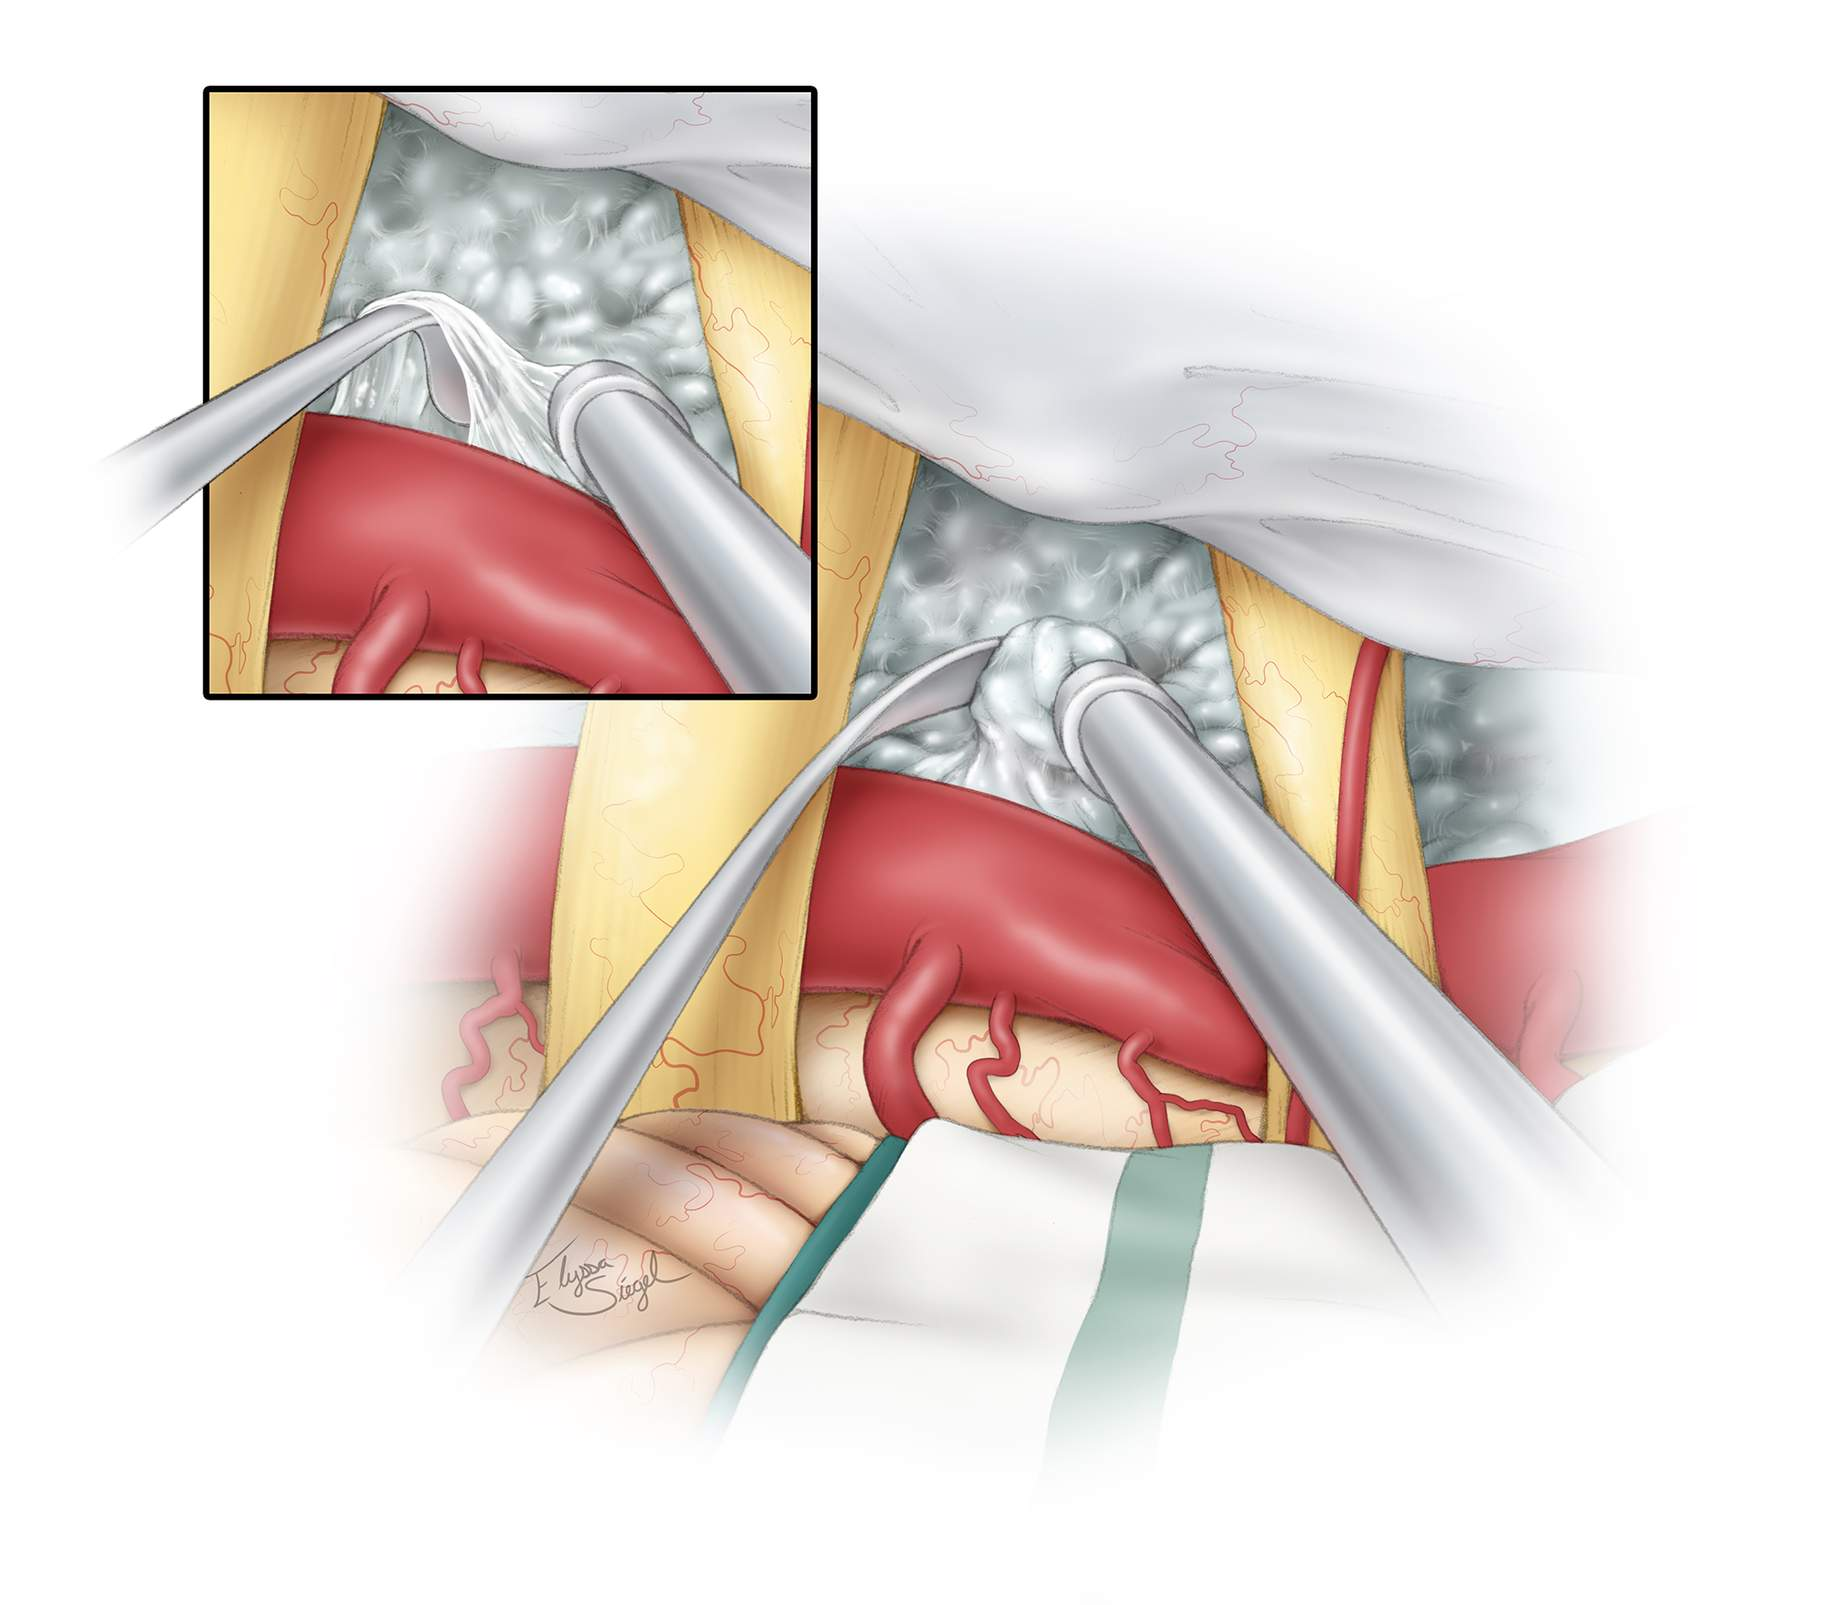 """Figure 11: Once the tumor in the ventral space ipsilateral to the basilar artery has been removed, exploration of the tumor beyond and on the contralateral side of this artery begins. This maneuver should be done via dynamic retraction on the artery using the hand-held suction device. Blind manipulation of and traction on tissues can result in perforator injury. The corridor between CNs V and VII/VIII is ideal for exploring resection of the lesions crossing the midline. It is important to avoid direct traction on the CN VII/VIII complex; however, the tolerant CN V may be gently manipulated if necessary. The encasing arachnoid membranes of the tumor on the pia, contralateral to the basilar artery, are used to deliver the tumor into the operator's view (inset image). Overall, the encasing arachnoid bands provide an effective """"handle"""" to mobilize the tumor during various steps of lesion removal."""